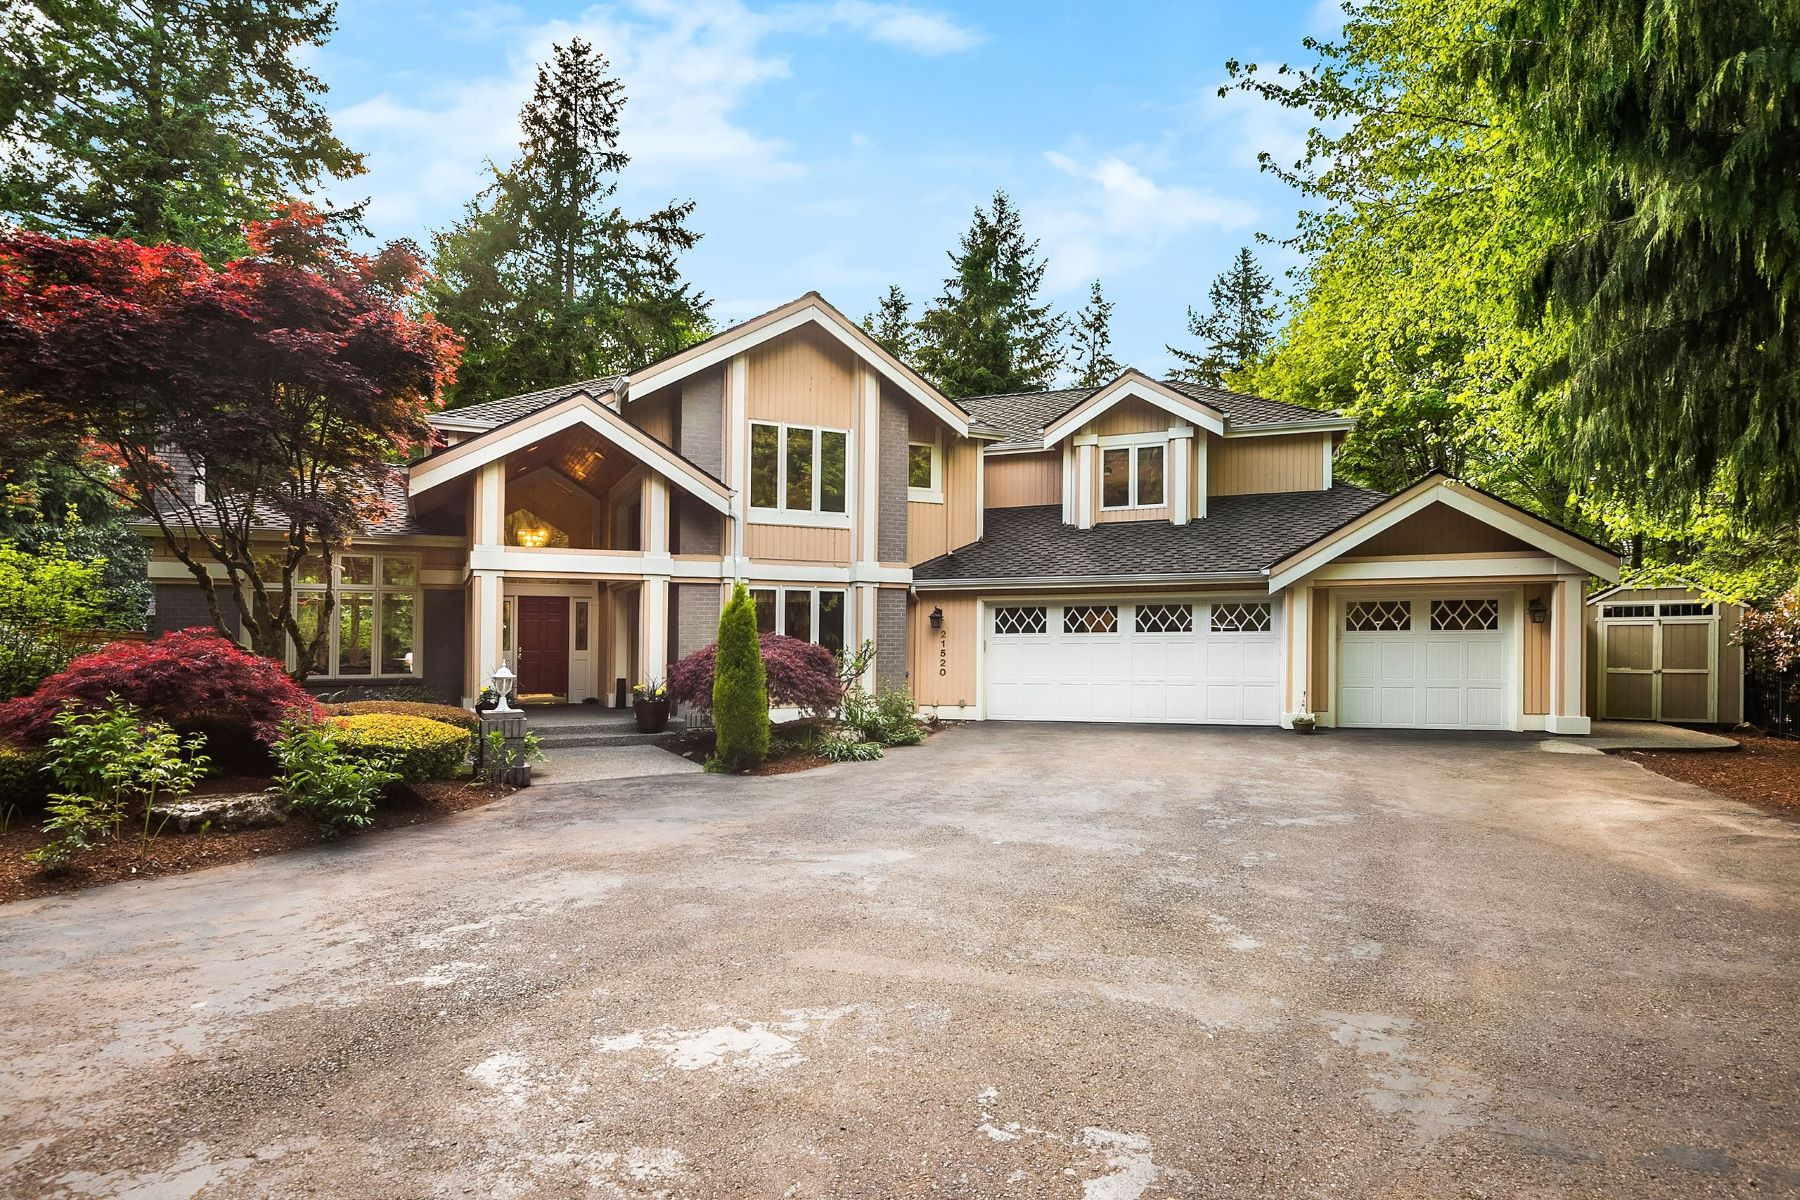 Single Family Homes for Sale at 21520 NE 144th Place, Woodinville, WA 98077 Woodinville, Washington 98077 United States